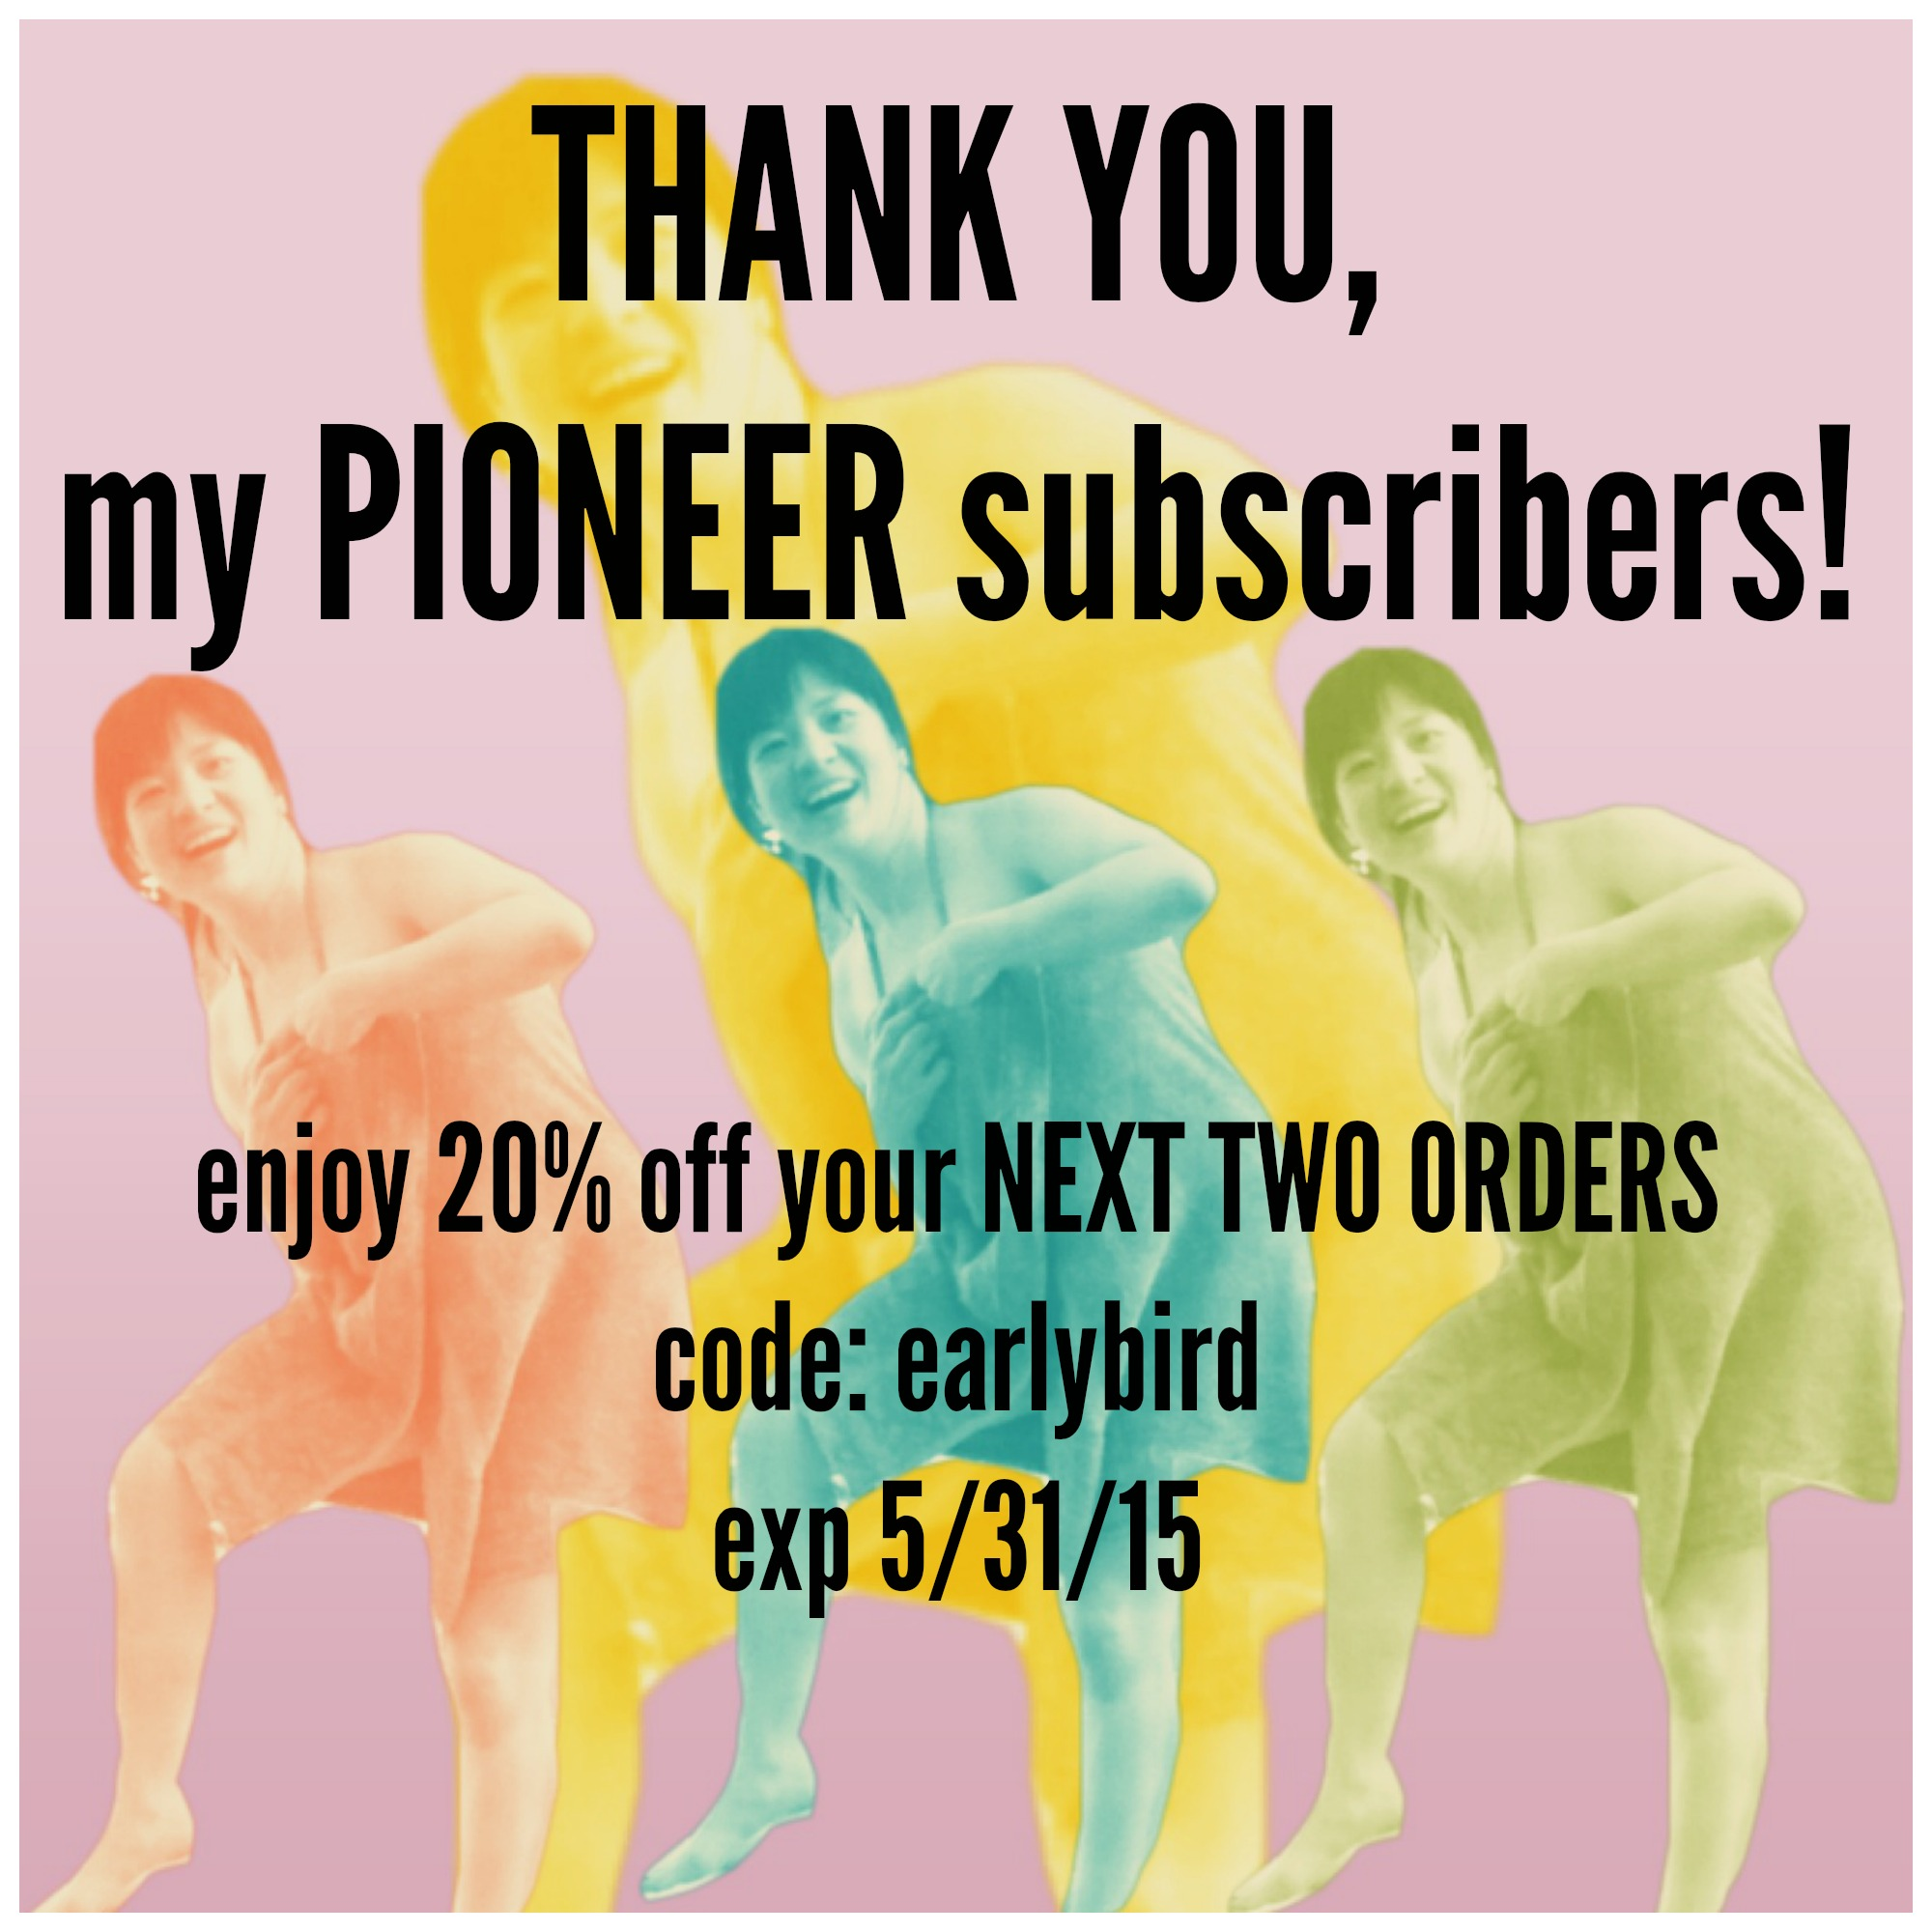 20% off for earlybird subscribers. Expires 5/31/15